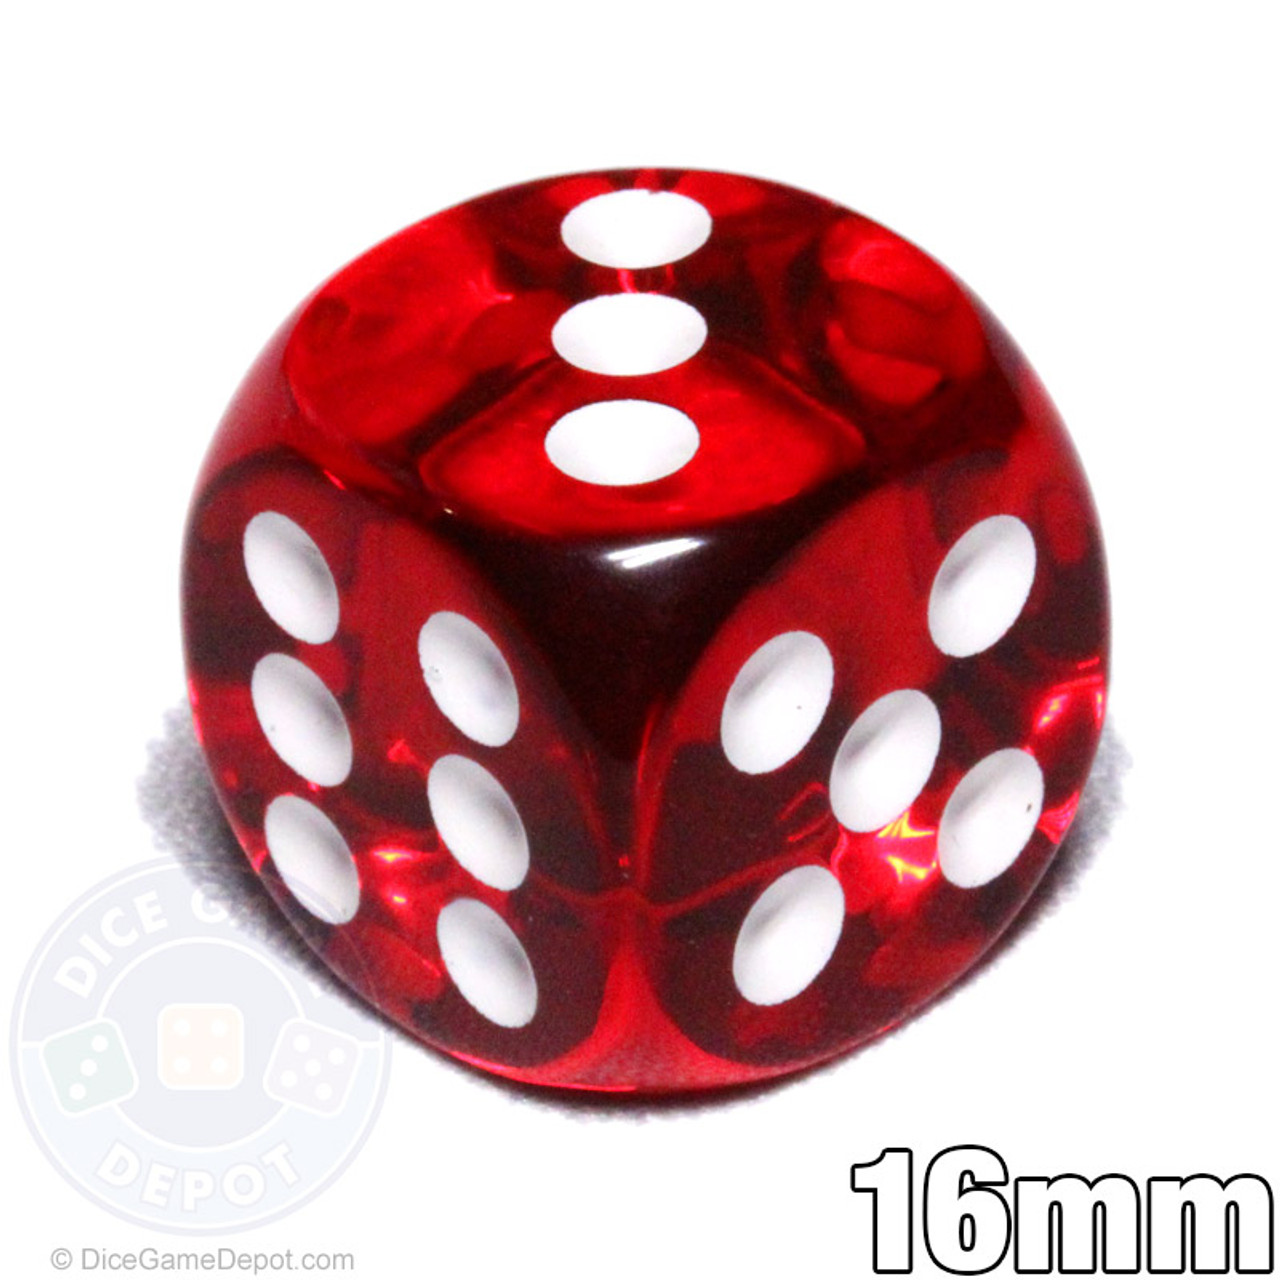 50 Six Sided Dice Set D6 16mm Standard Rounded Translucent Games Die Green Red